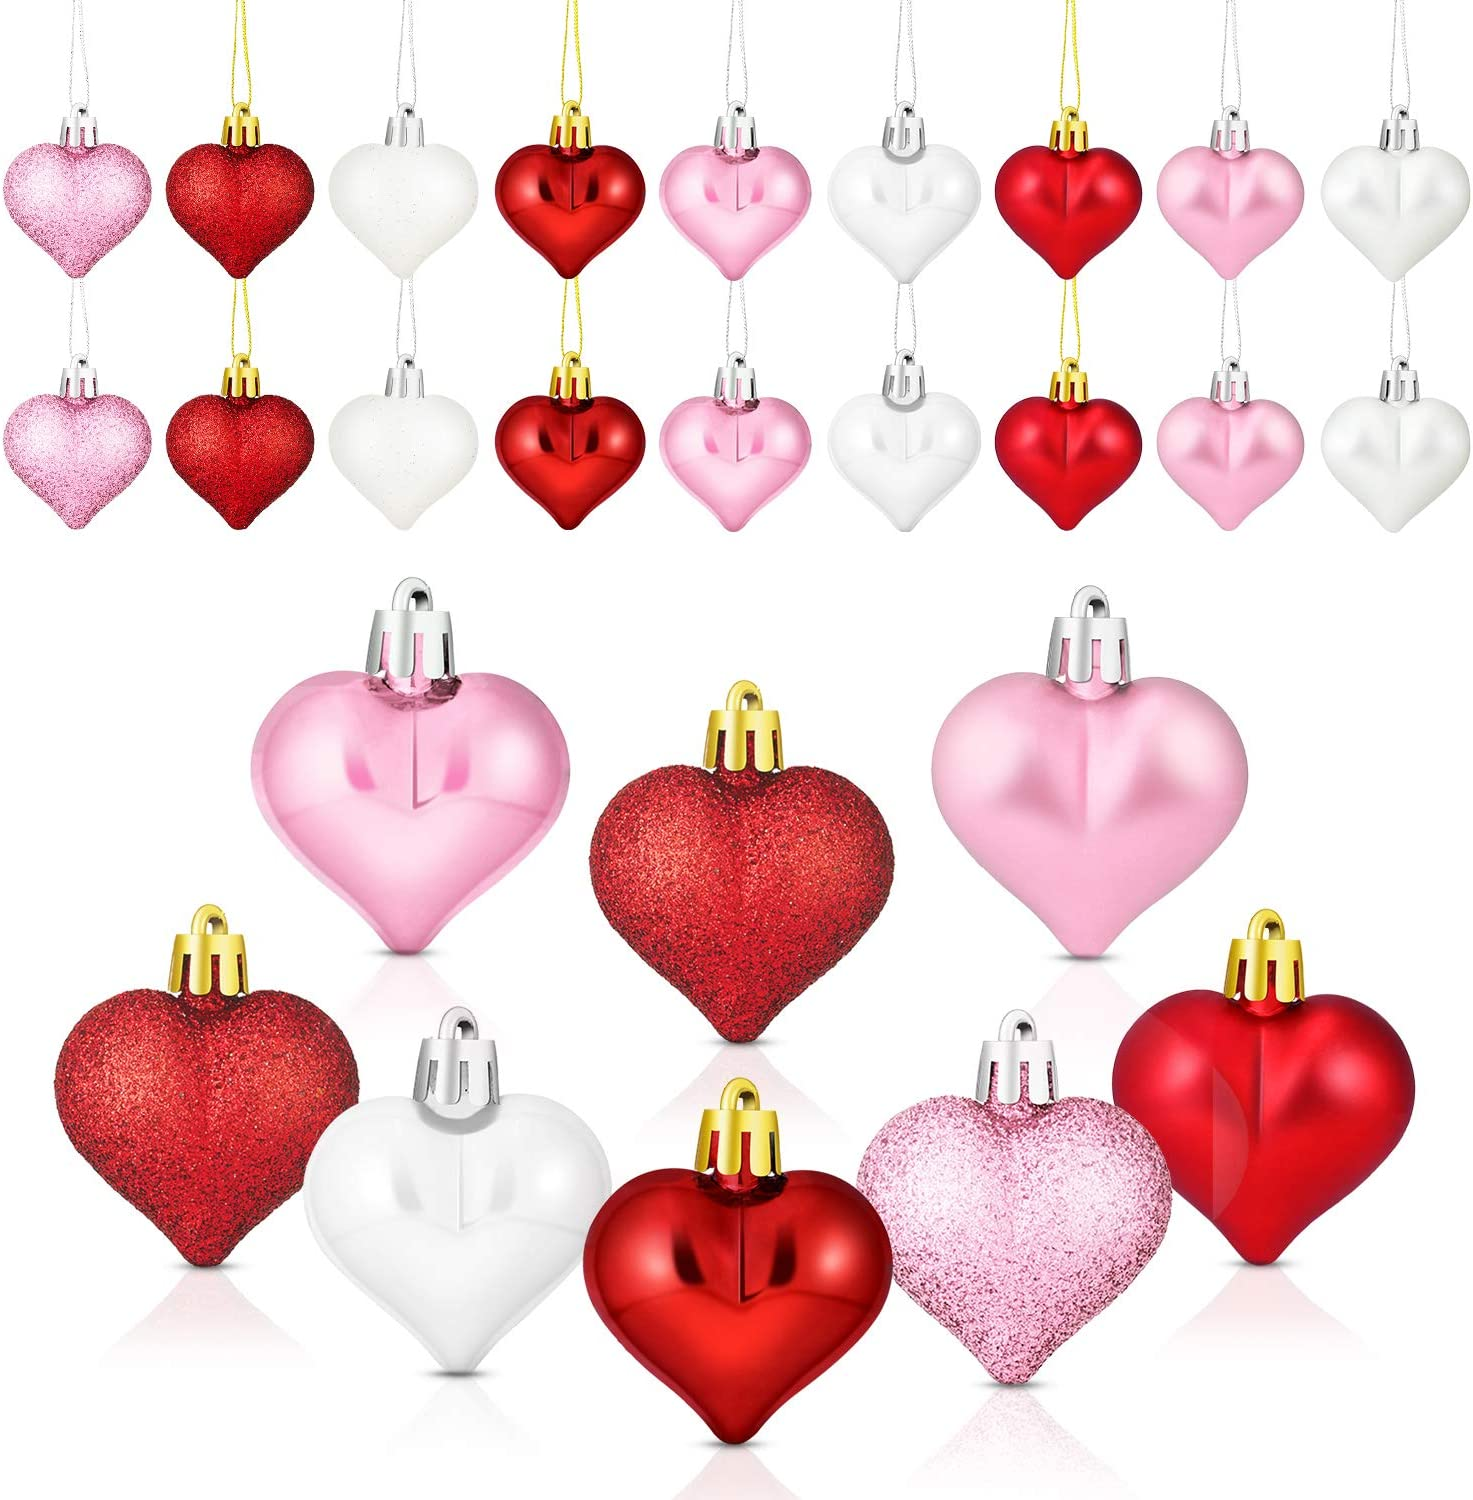 WILLBOND 36 Pieces Glitter Matt Heart Shaped Ornaments Tree Baubles Heart Ornament for Valentine's Day Holidays Decoration, 3 Colors